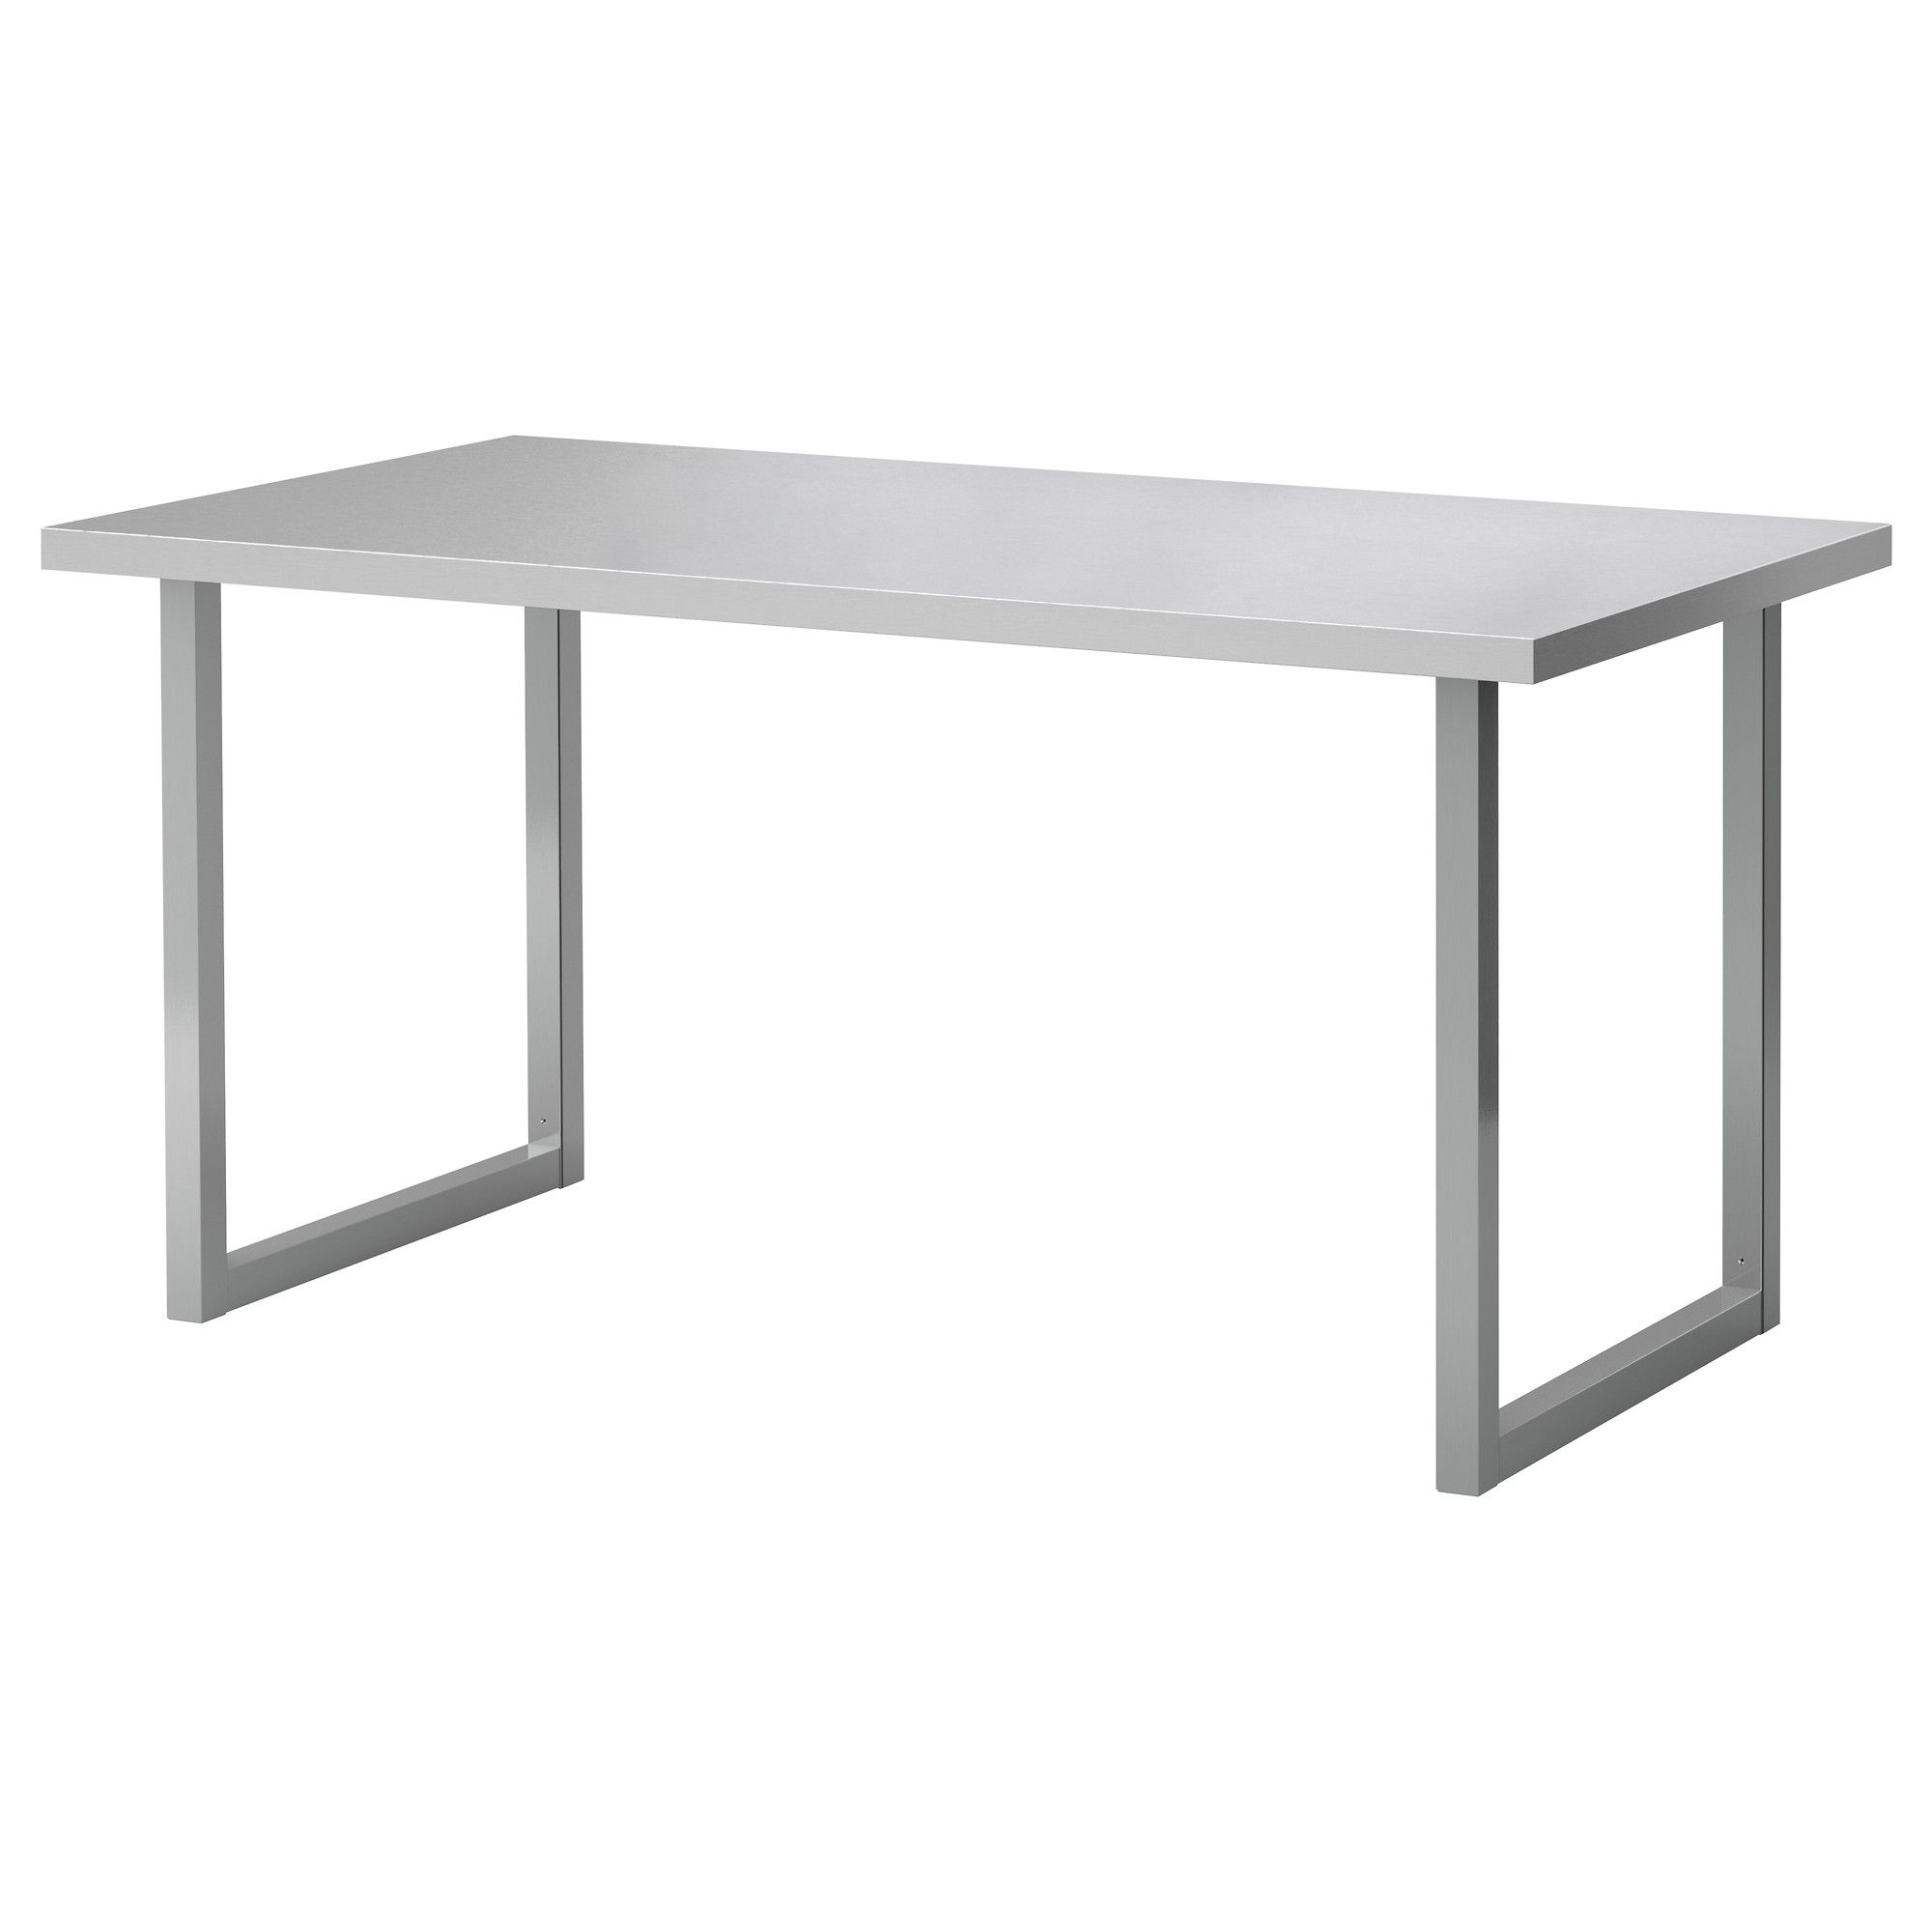 Ikea Us Furniture And Home Furnishings Ikea Table Tops Ikea Table Home Office Furniture